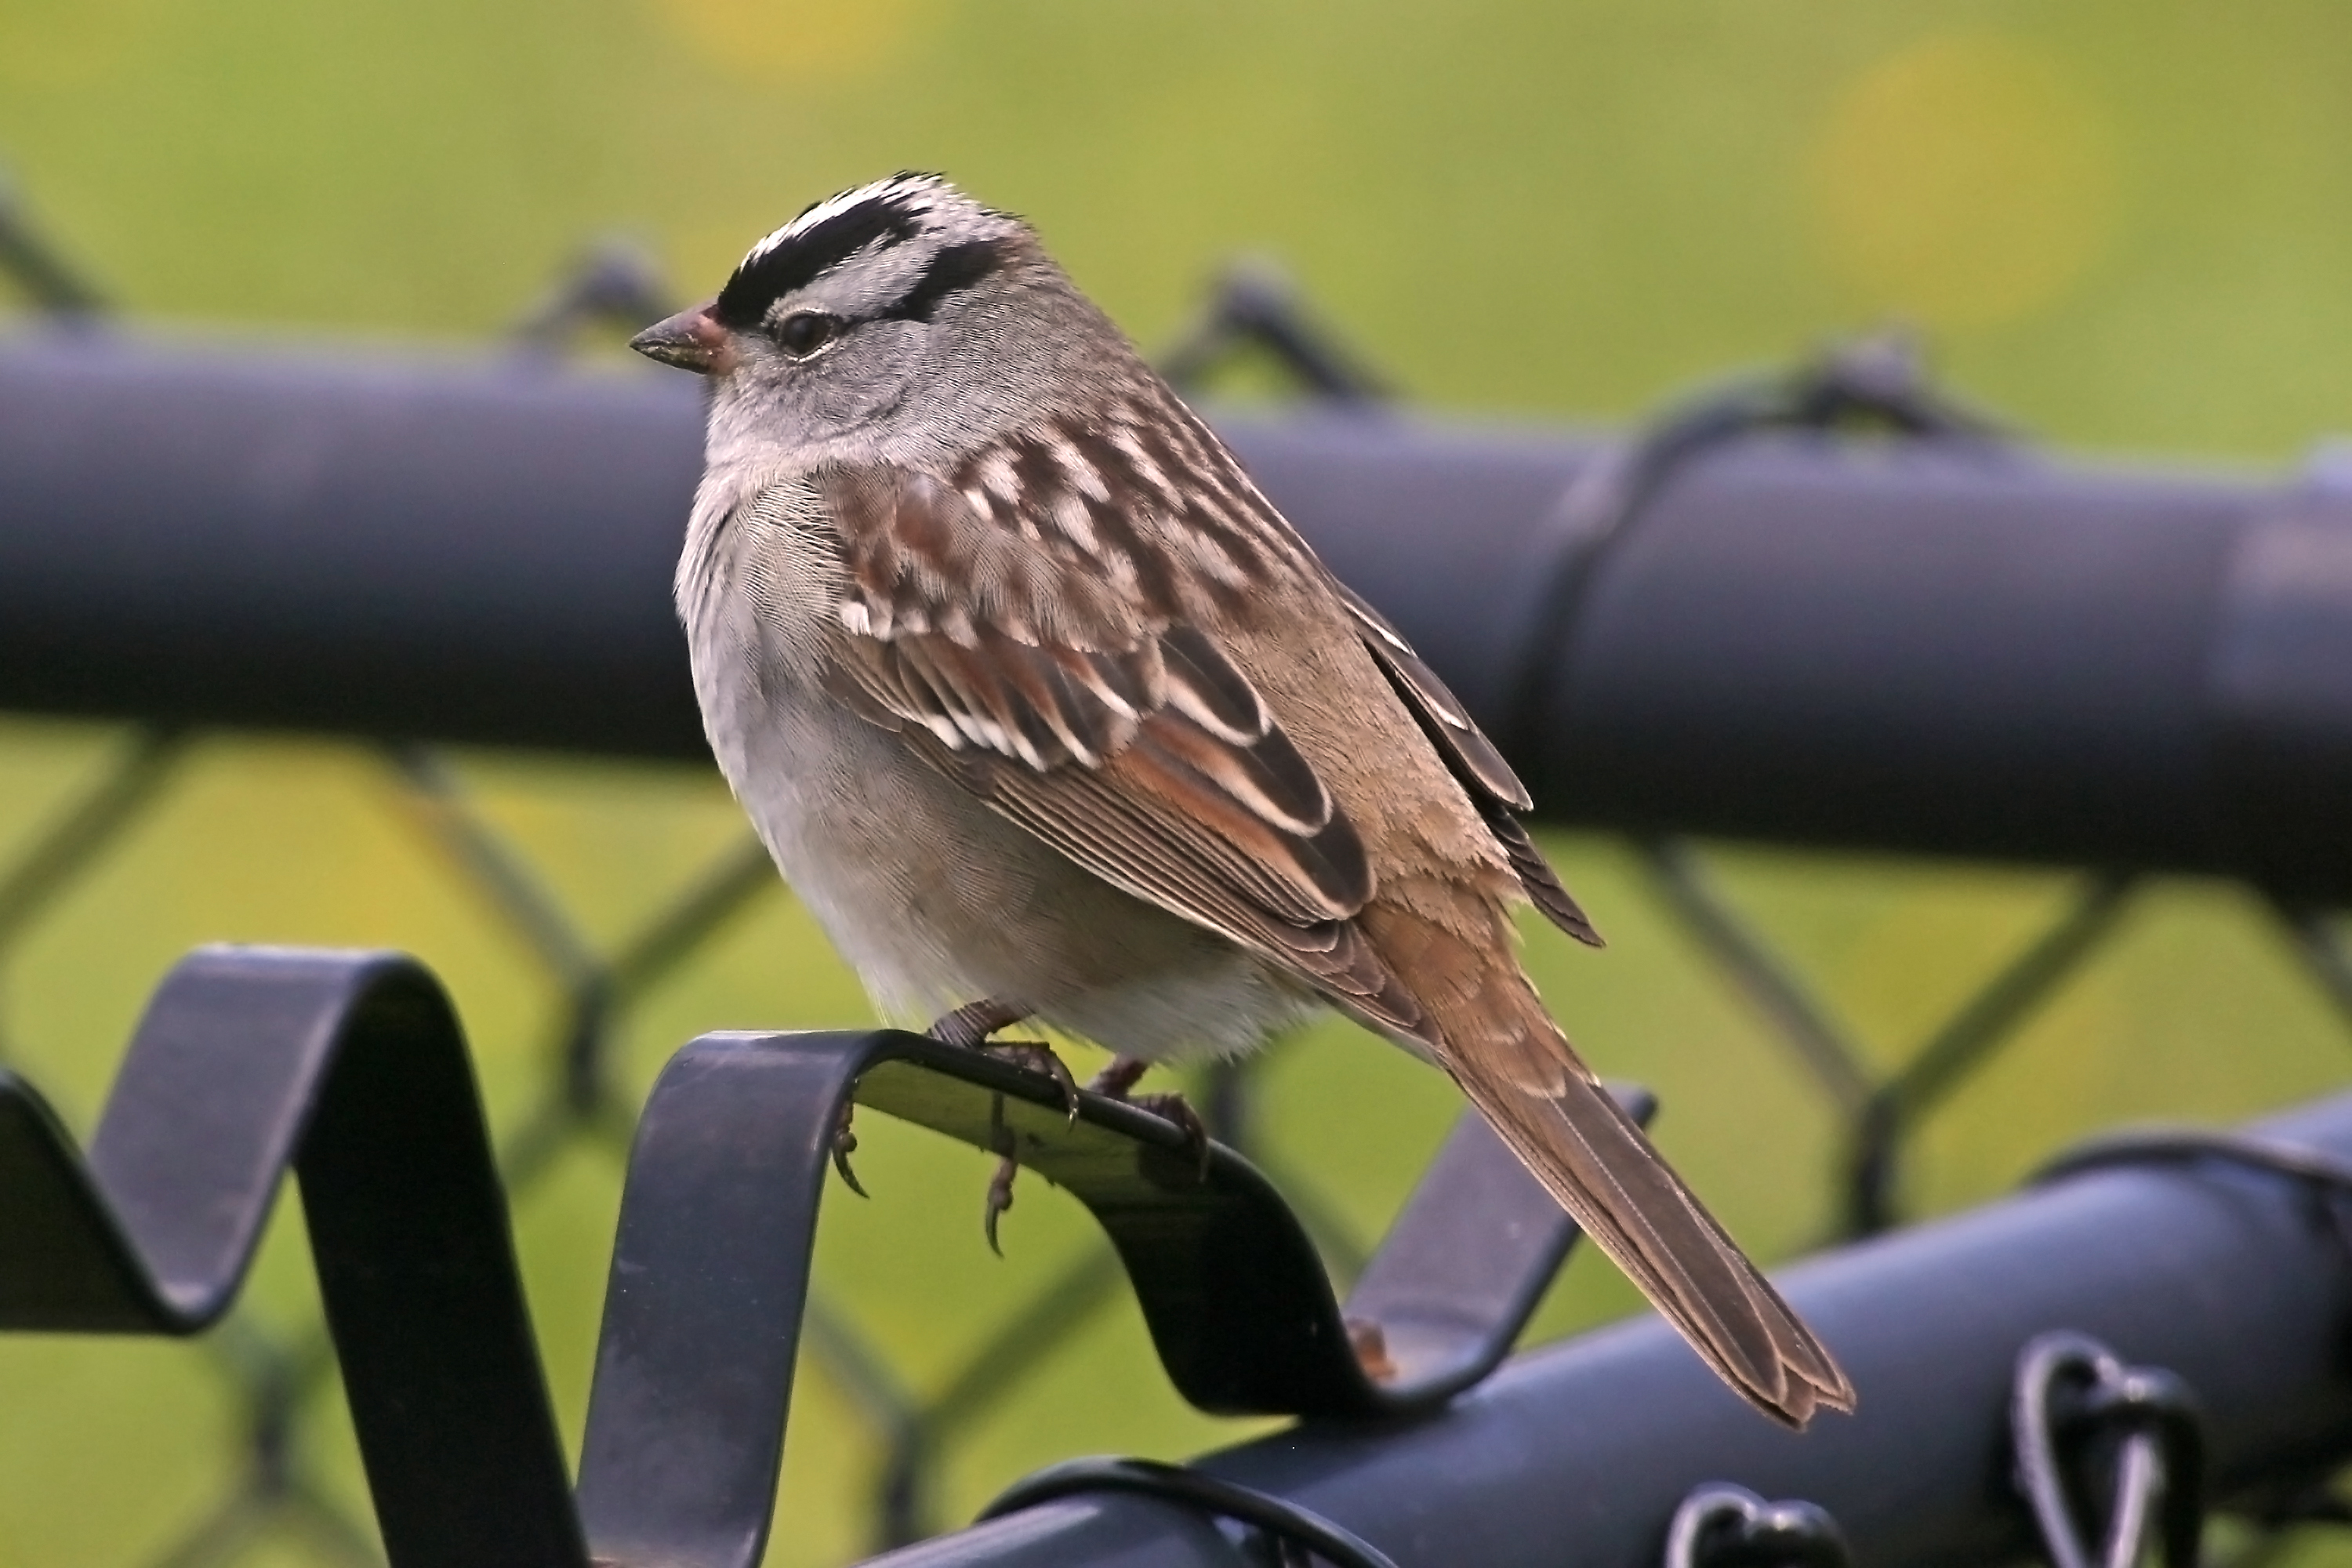 A little birdie landed on my fence, Animal, Bird, Feather, Fence, HQ Photo